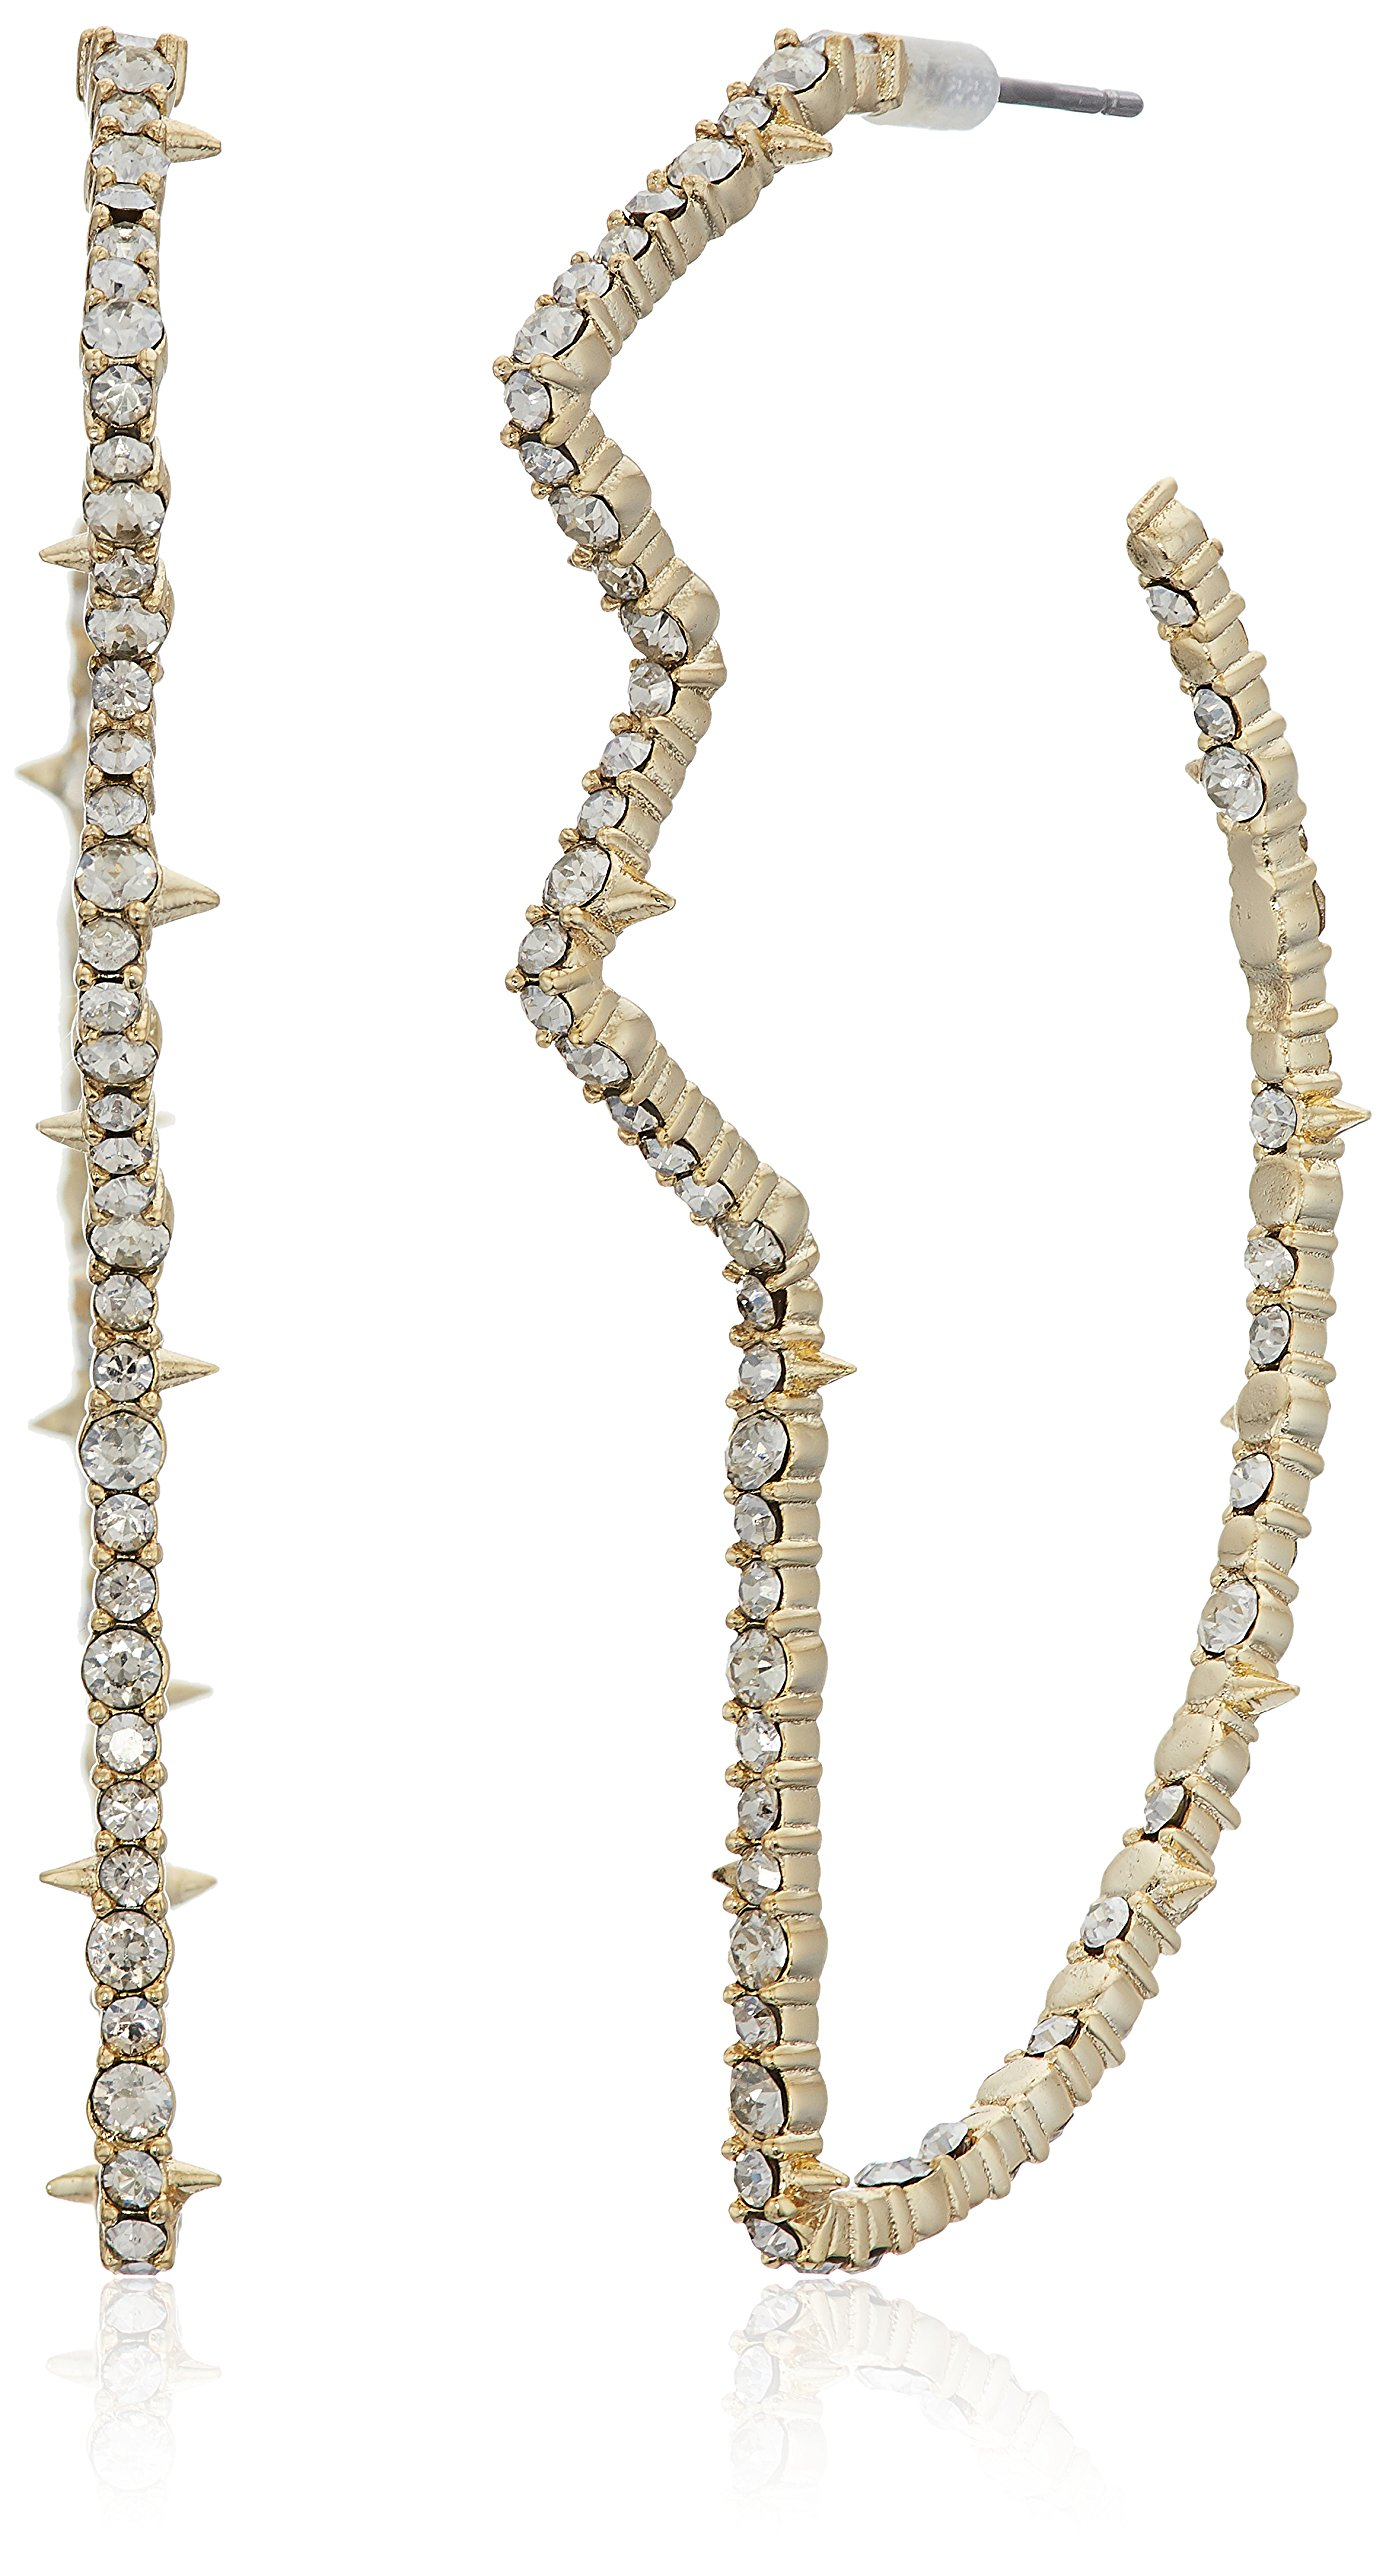 Alexis Bittar Crystal Encrusted Abstract Tulip Hoop Post Earrings, 10K Gold, One Size by Alexis Bittar (Image #1)